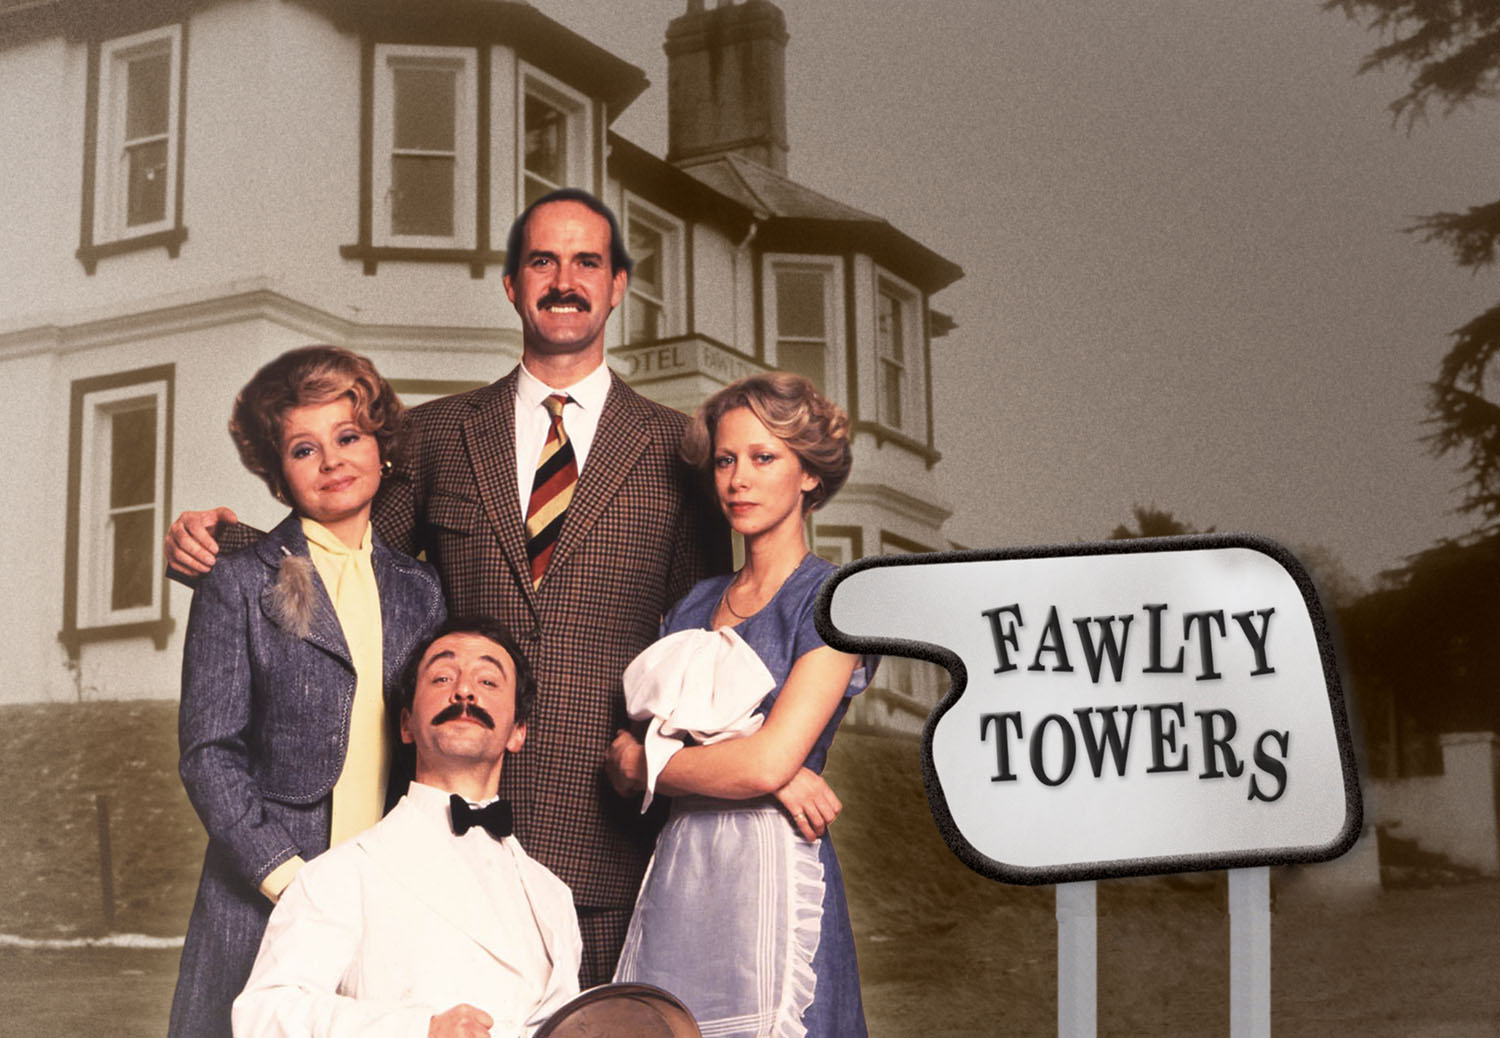 Fawlty Towers - Very Poor Frontline Marketing